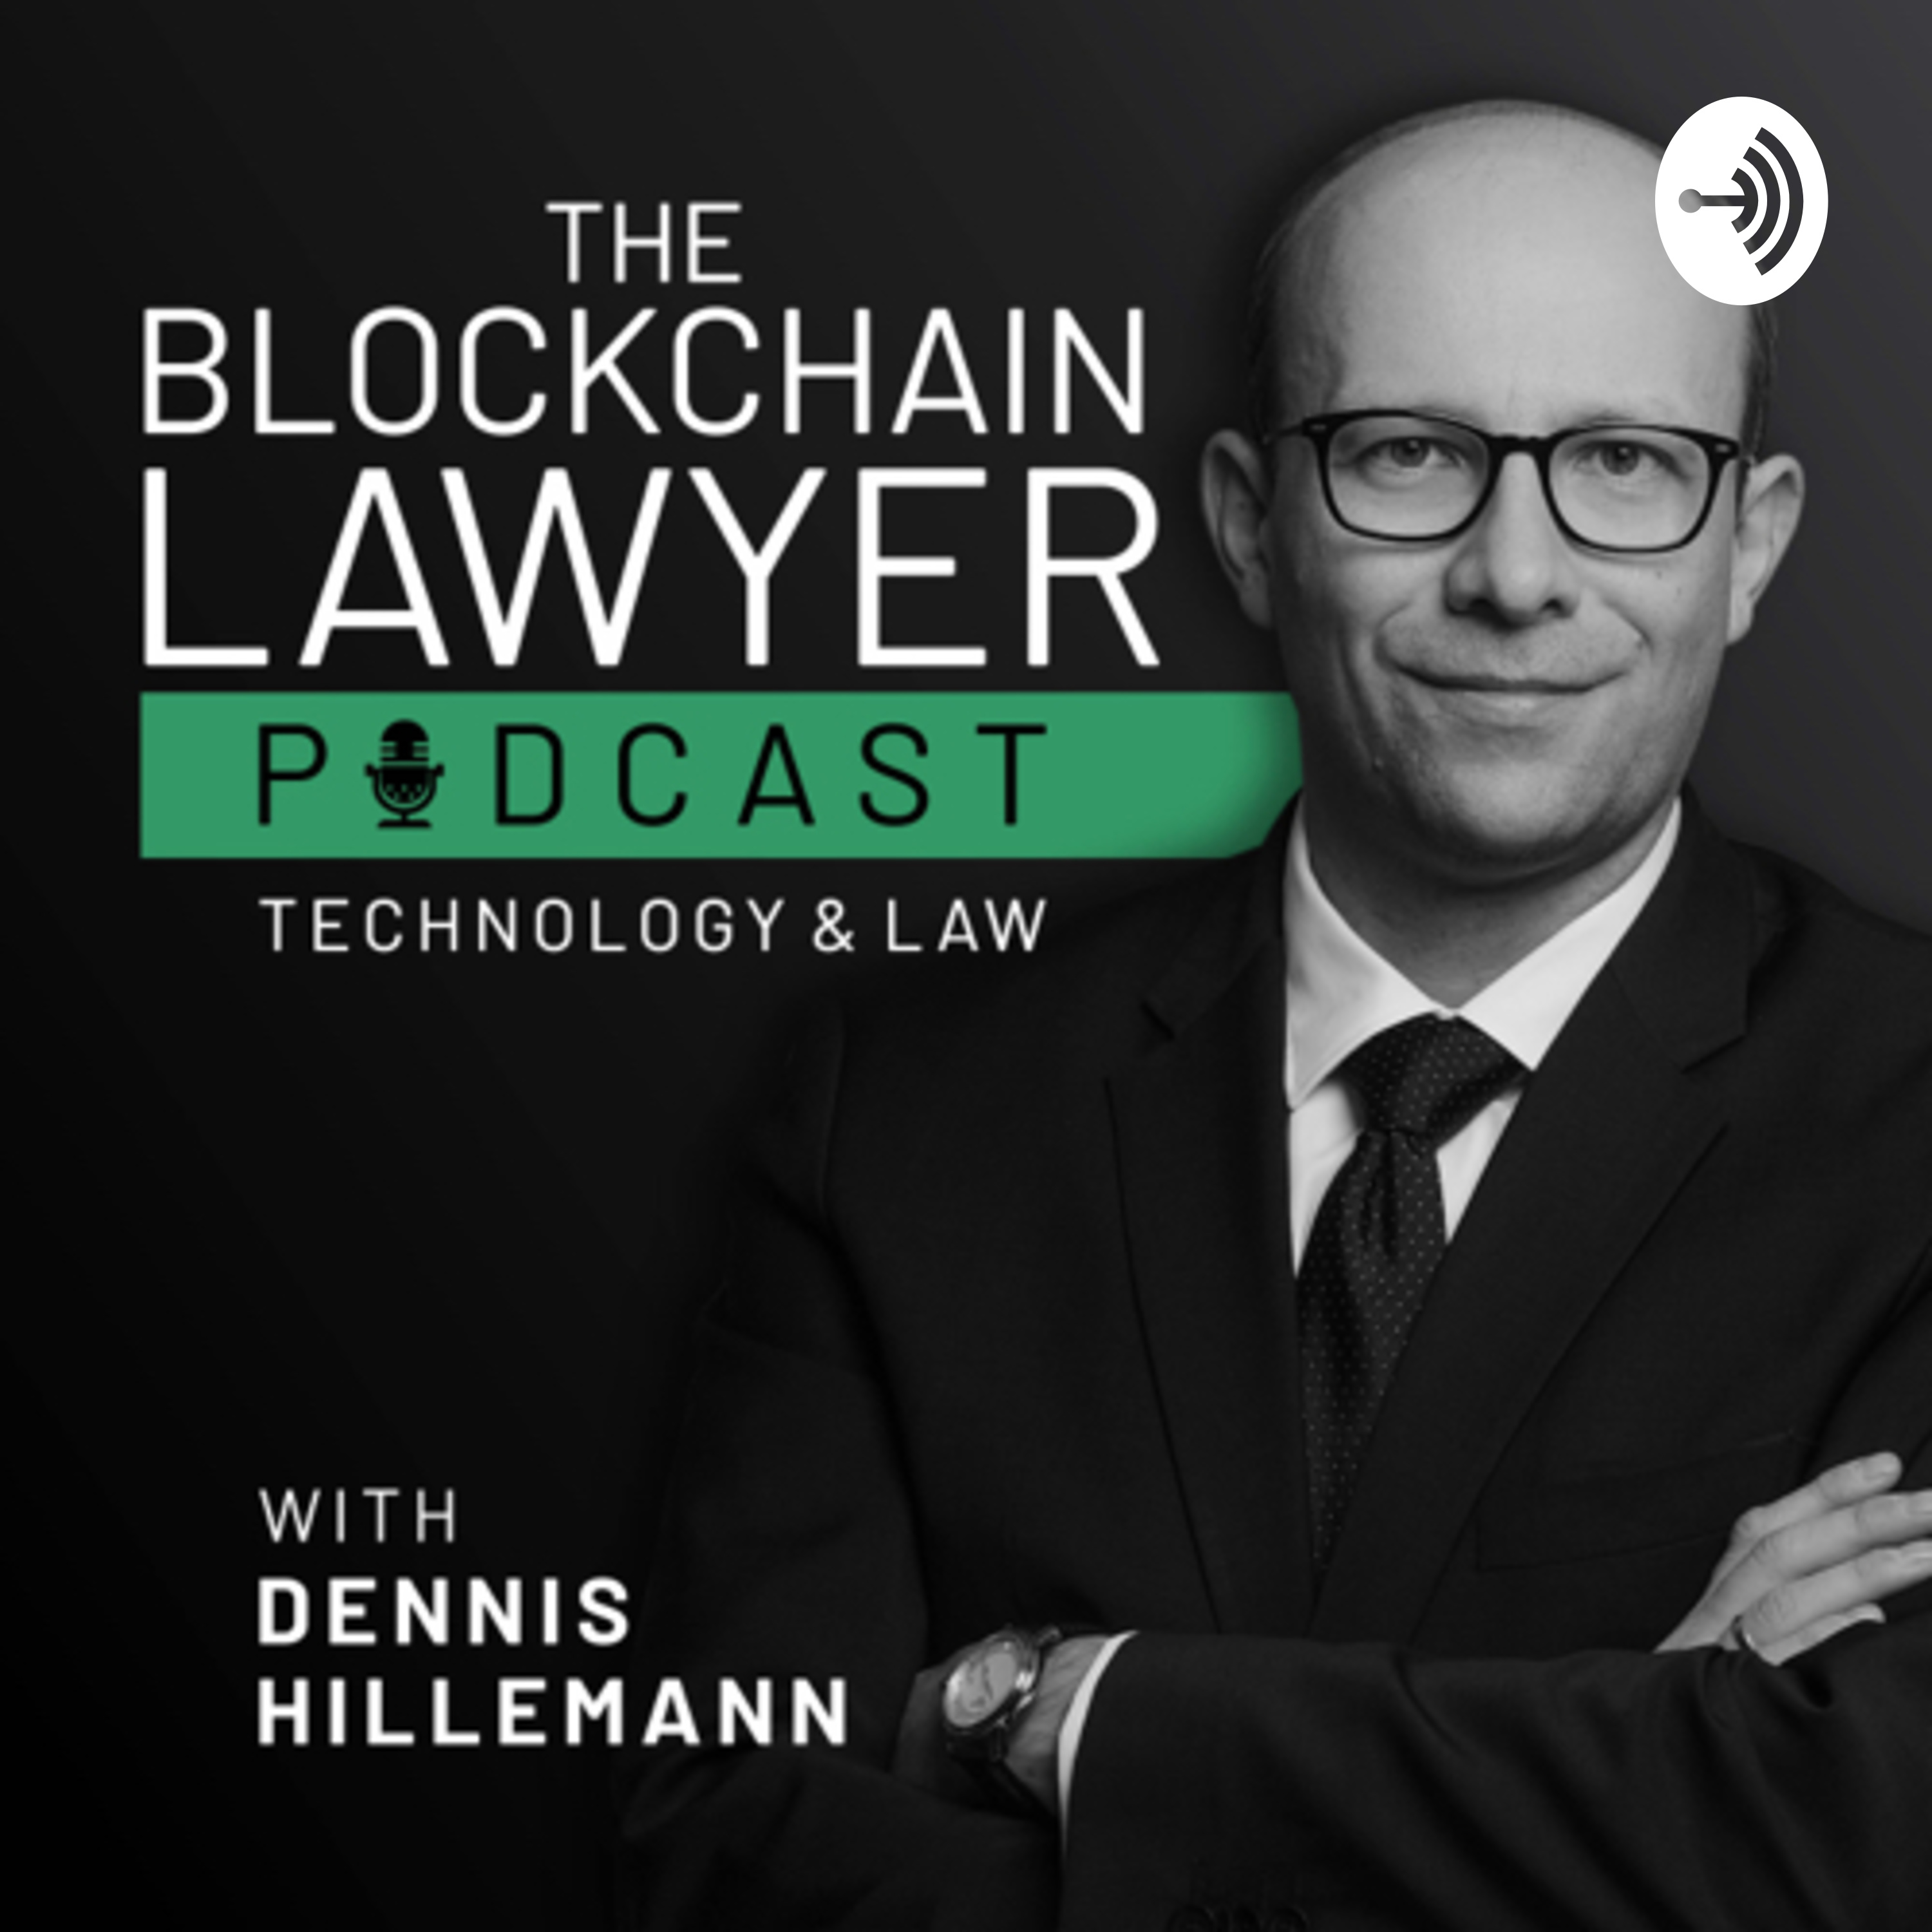 EP. 24: Tokenization of Intellectual Property Rights (with Esen Esener, LL.M, LL. M)